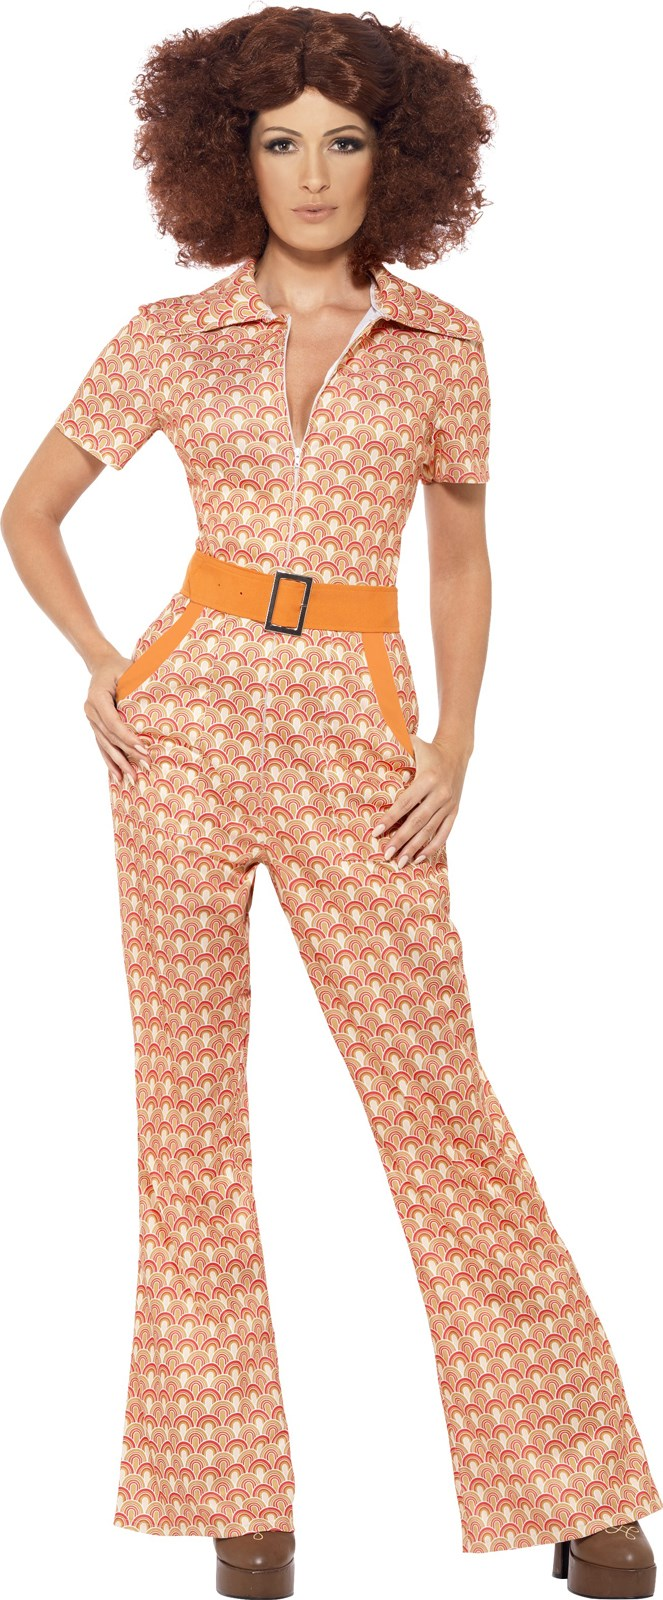 Authentic 70s Chic Costume For Women